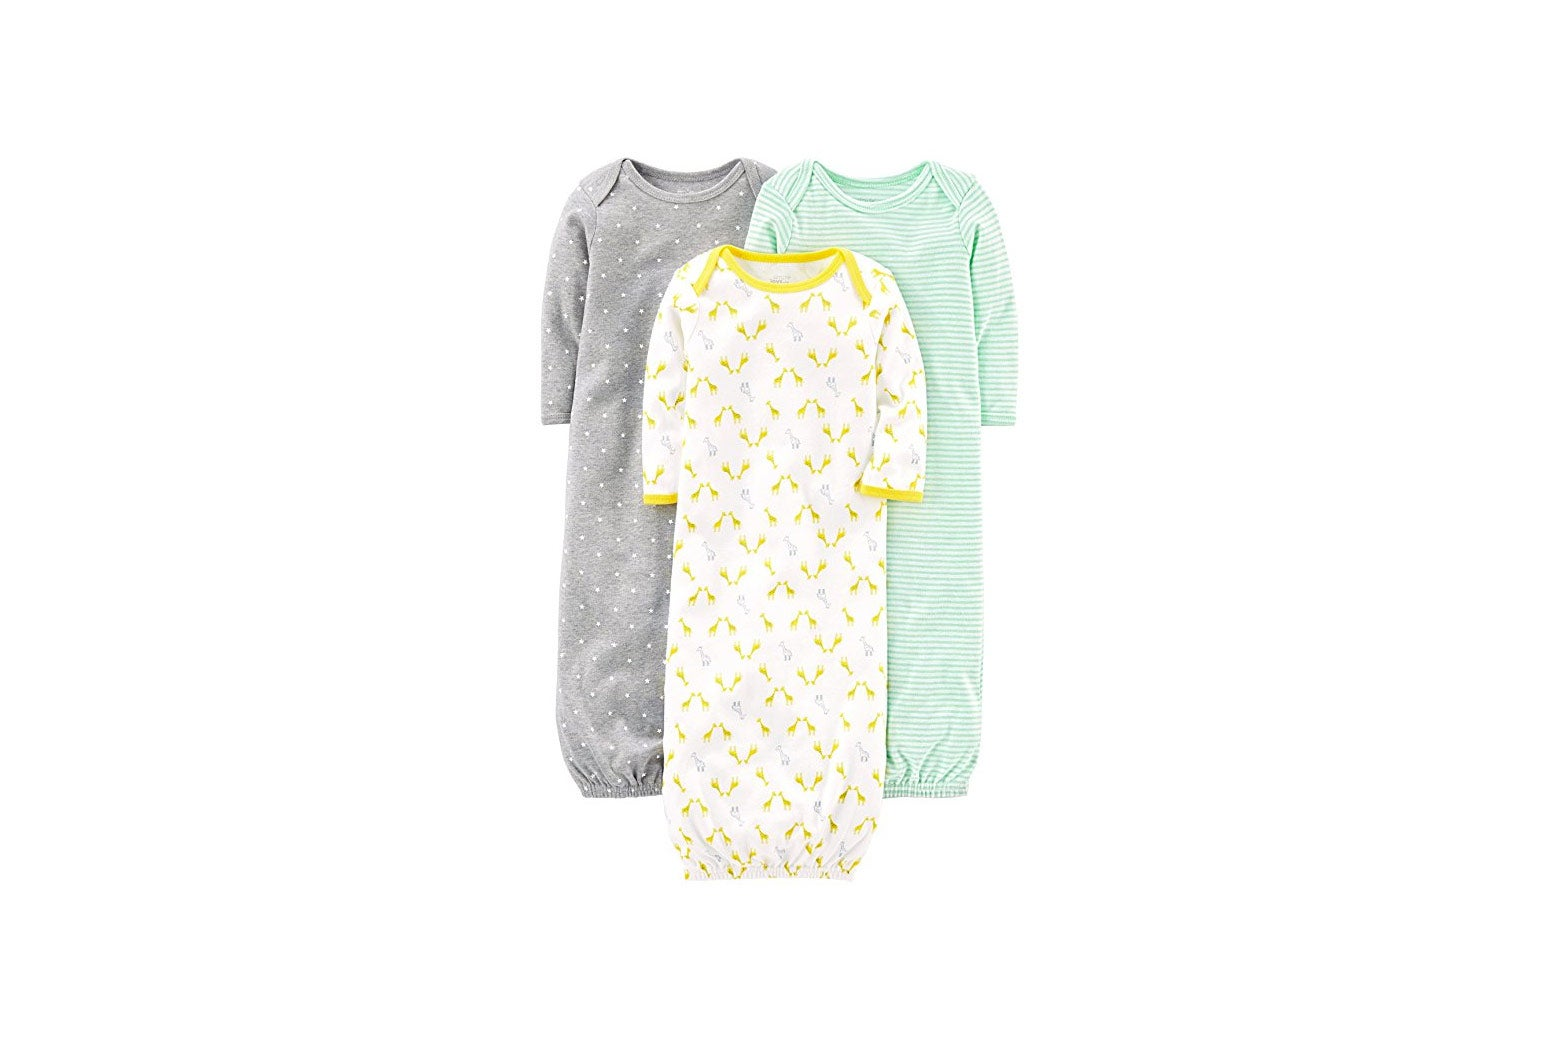 Carter's Baby 3-Pack Cotton Sleeper Gown